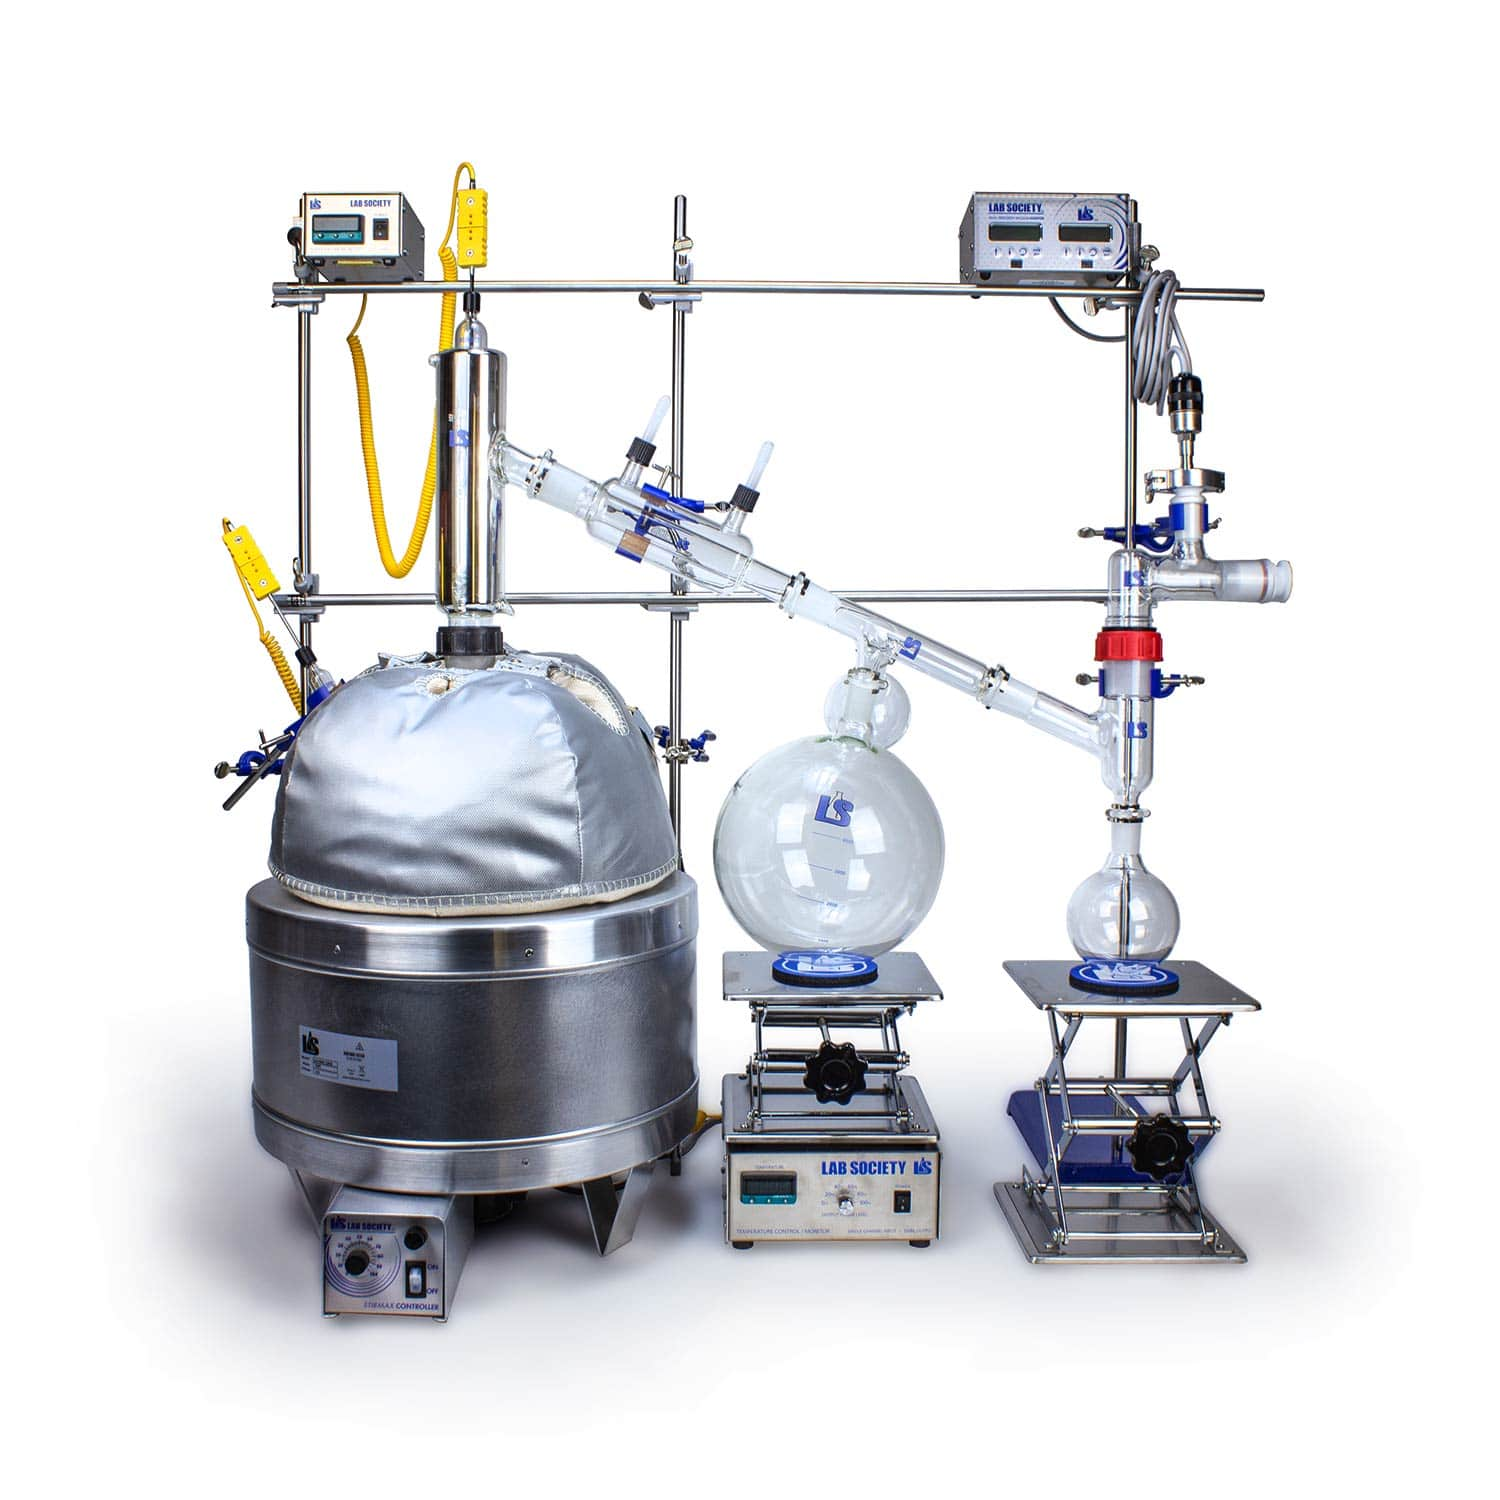 Our 12L Short Path Distillation Kit is Fully Automatable, Thanks to EliteLab!